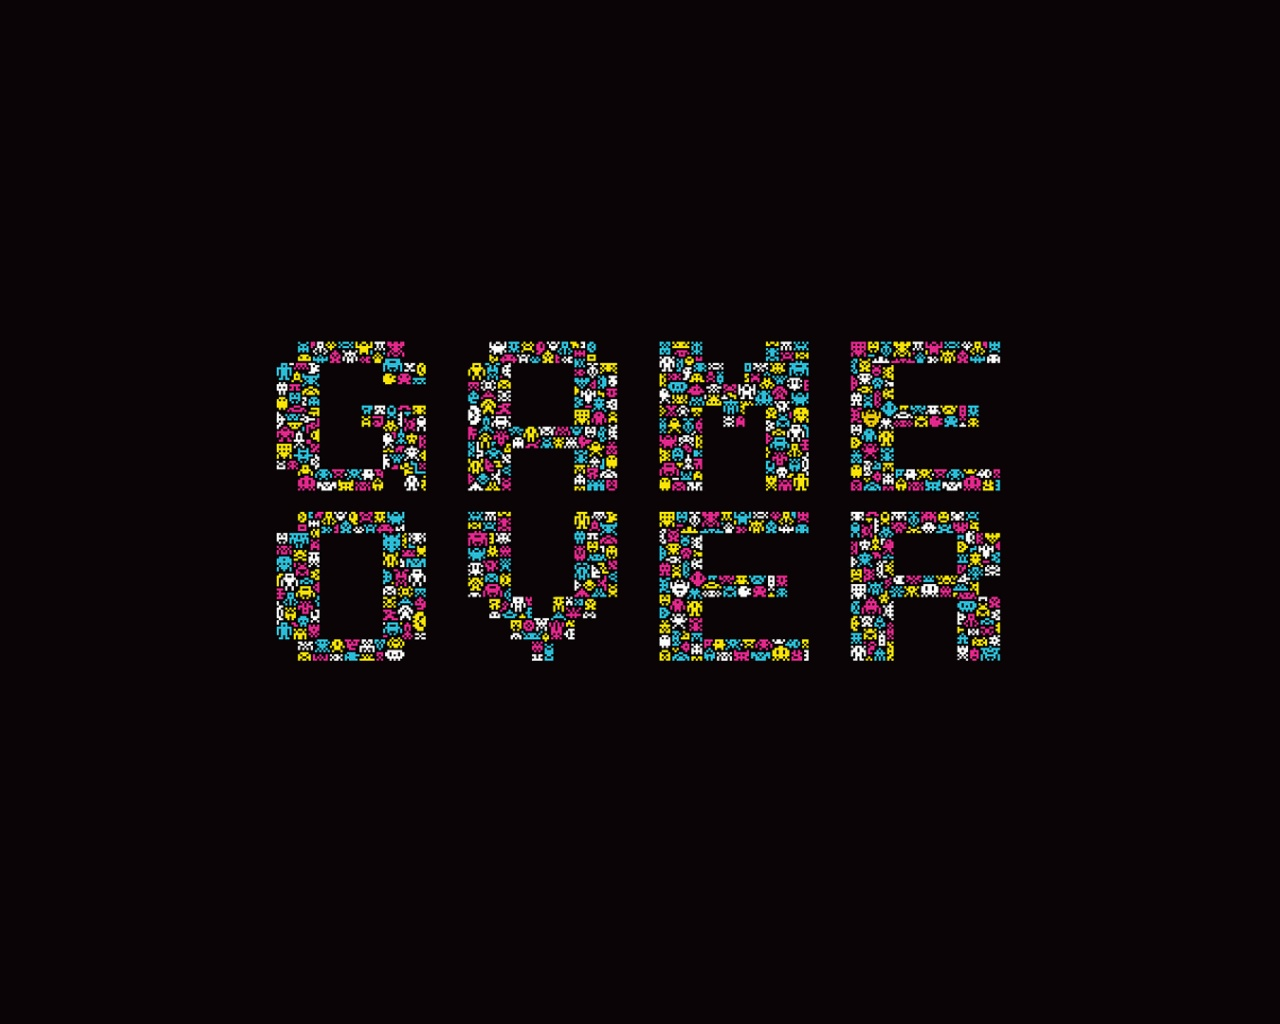 Best 54 Game Over Wallpaper on HipWallpaper Game Wallpapers PC 1280x1024